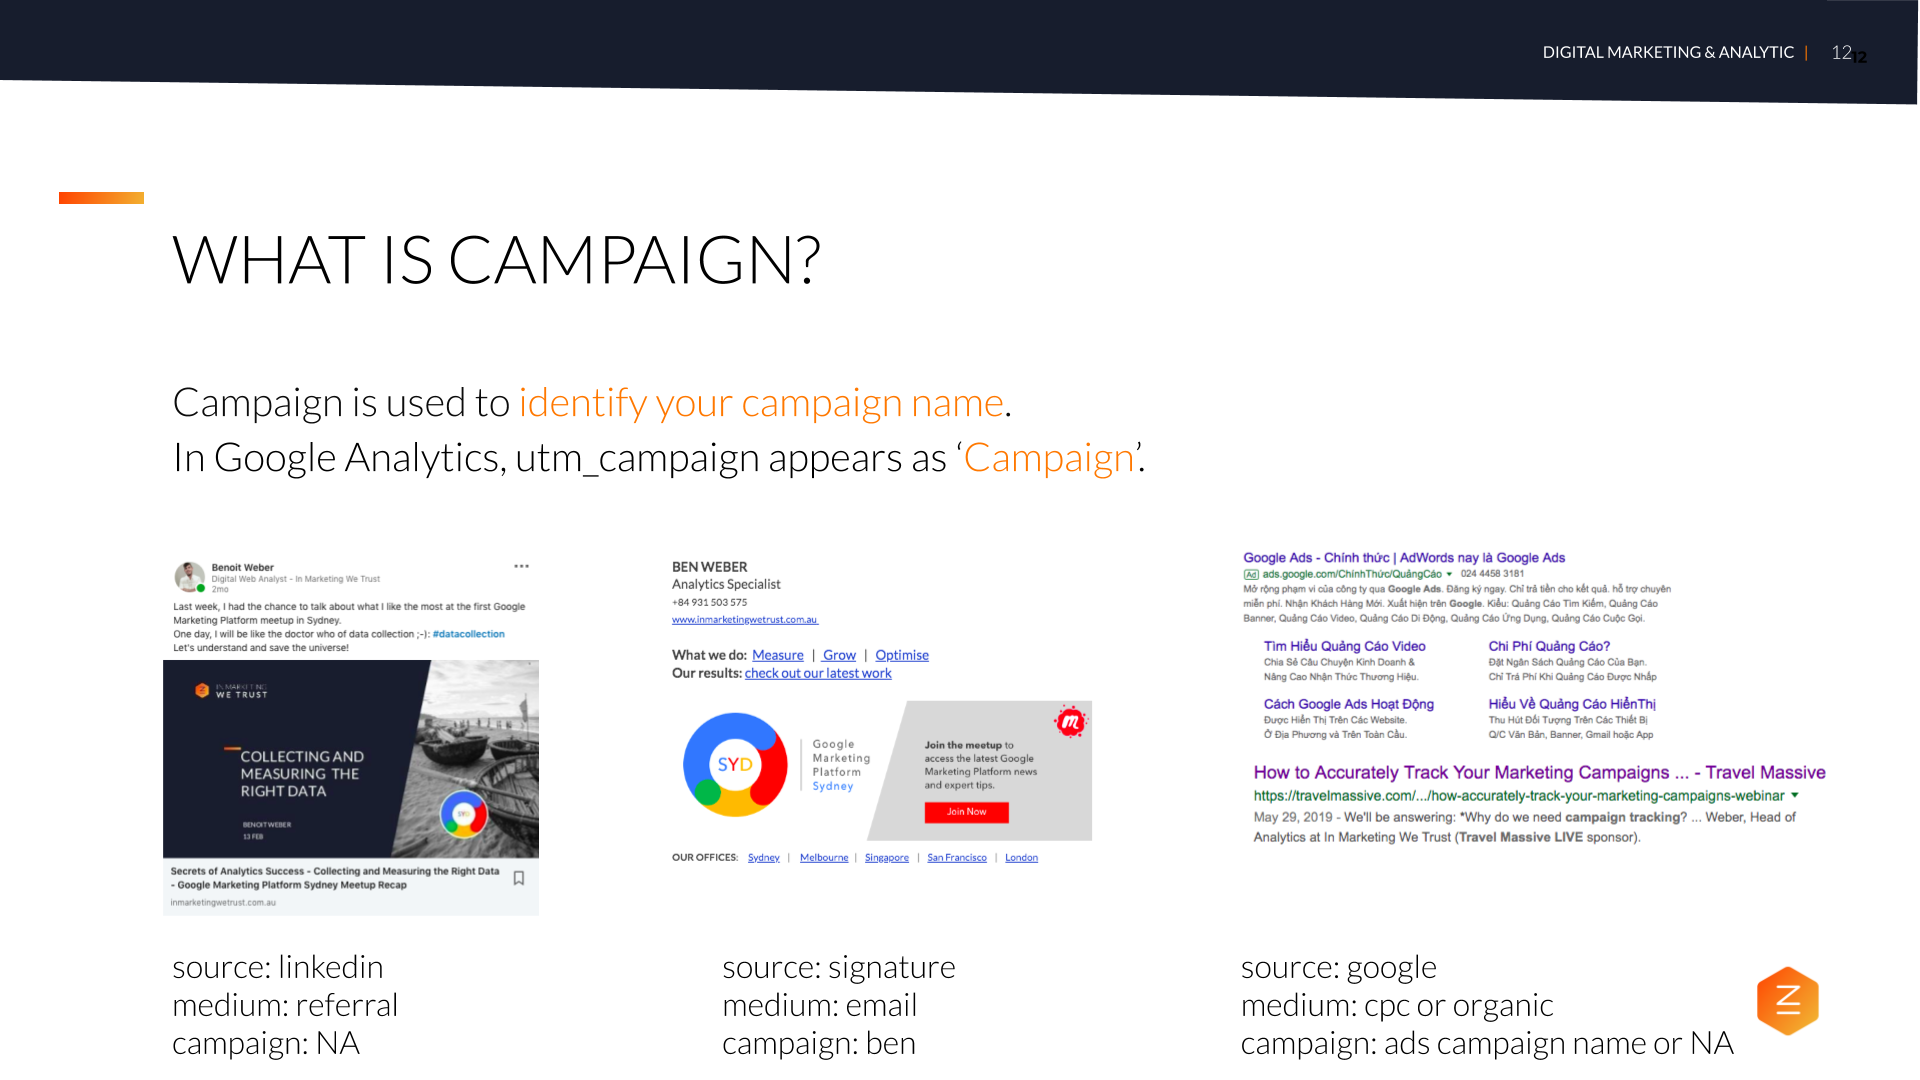 What is campaign - How to Accurately Track Marketing Campaigns